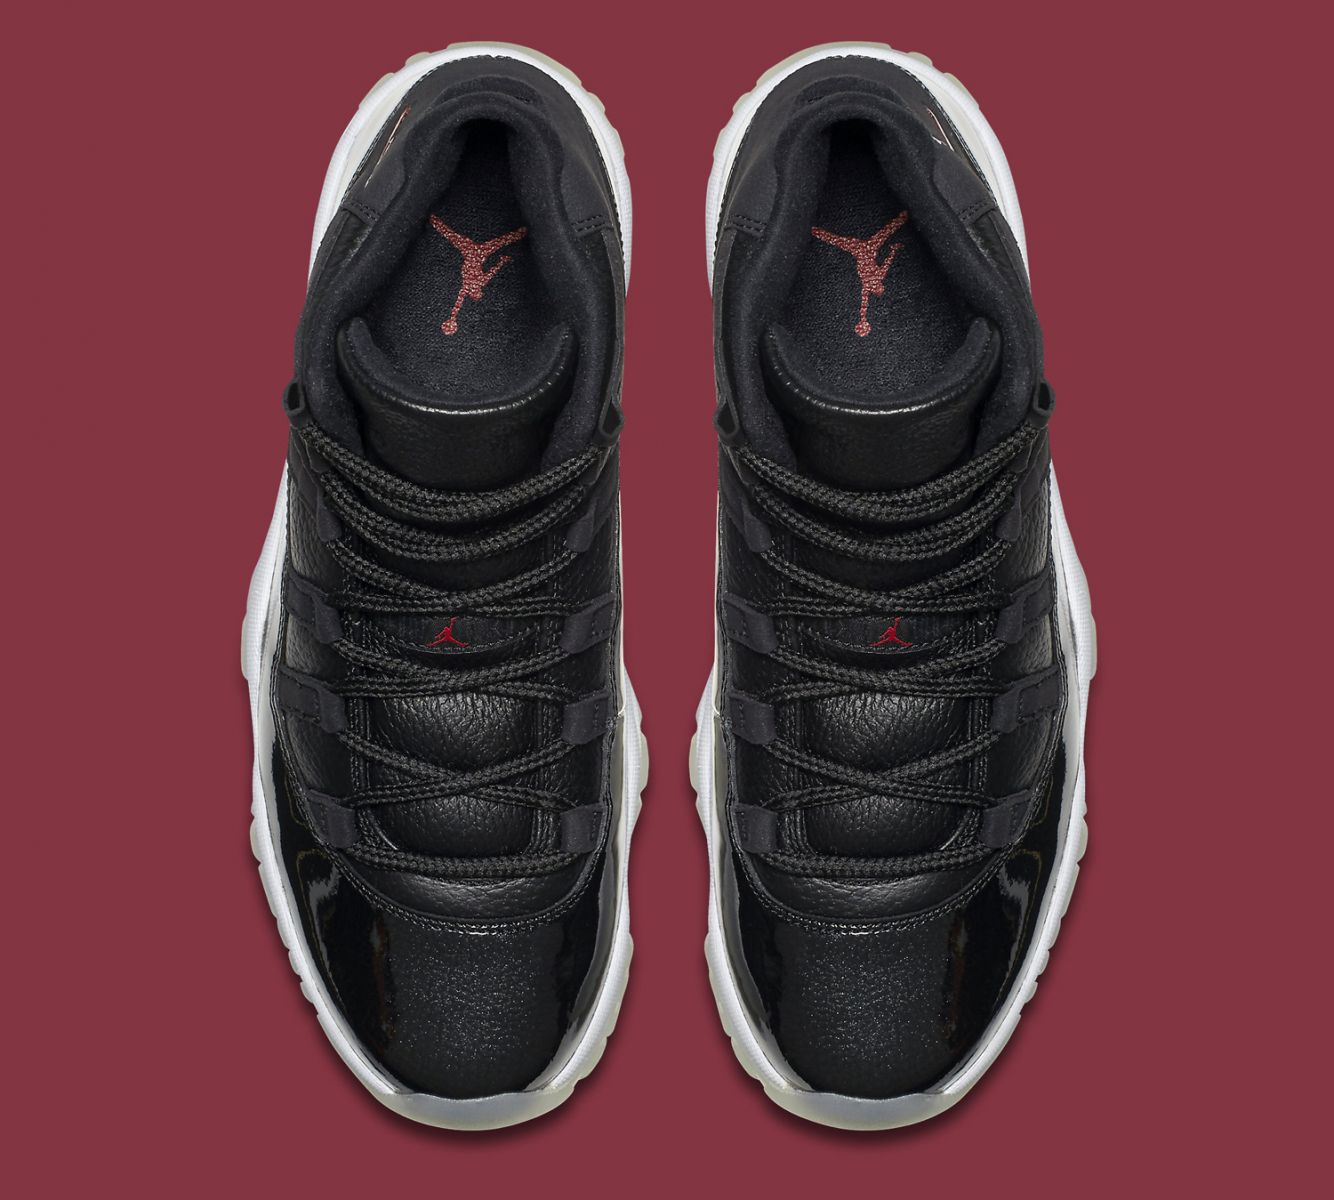 a6845e7057b63 Retailers Sold Over a Million Pairs of  72-10  Air Jordan 11s